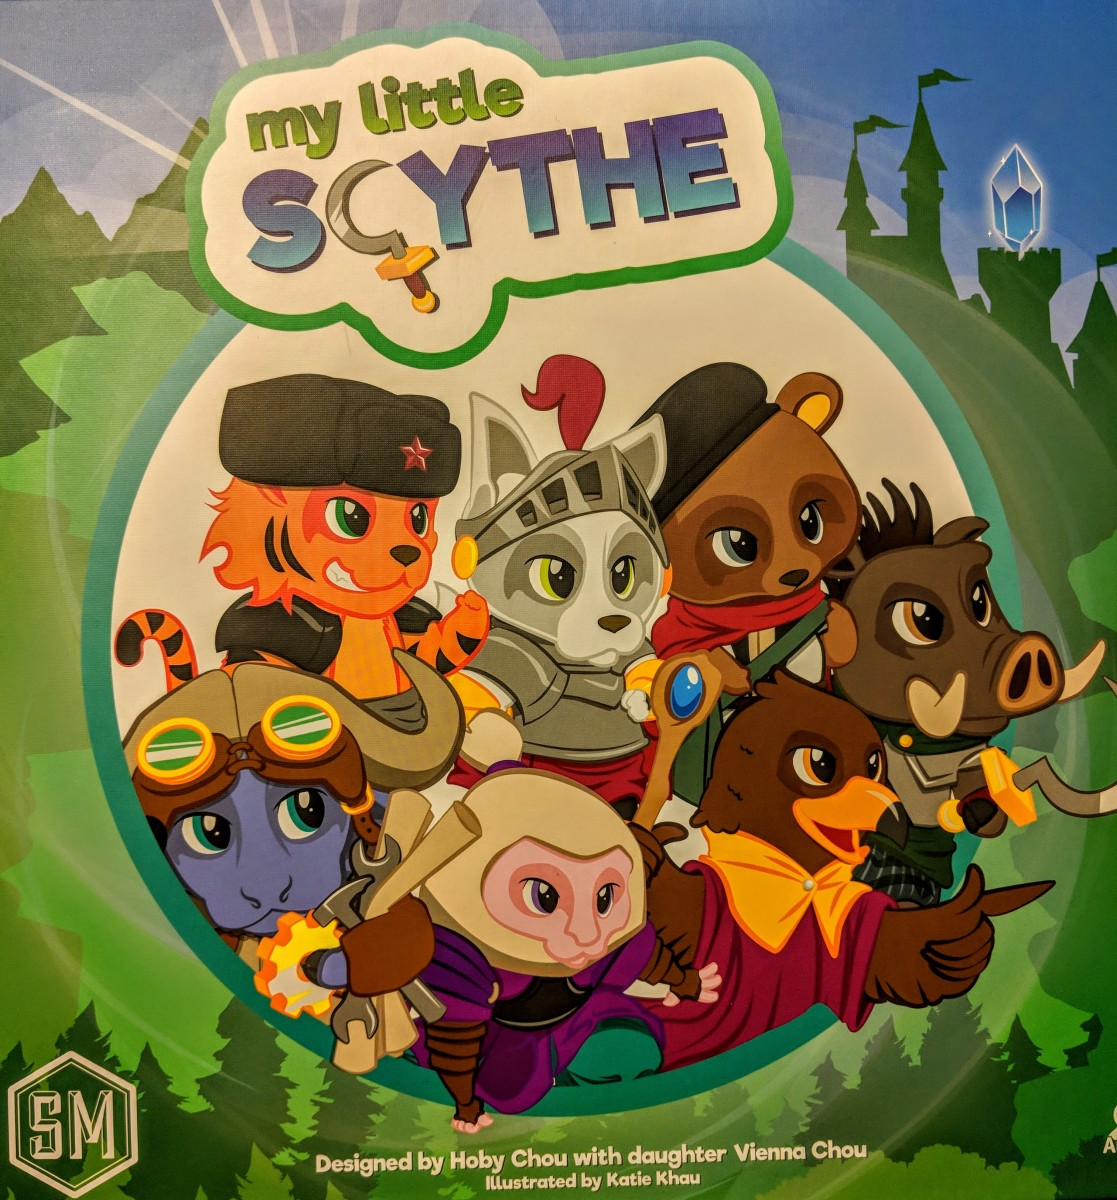 Review of My Little Scythe – The Meeple Street image